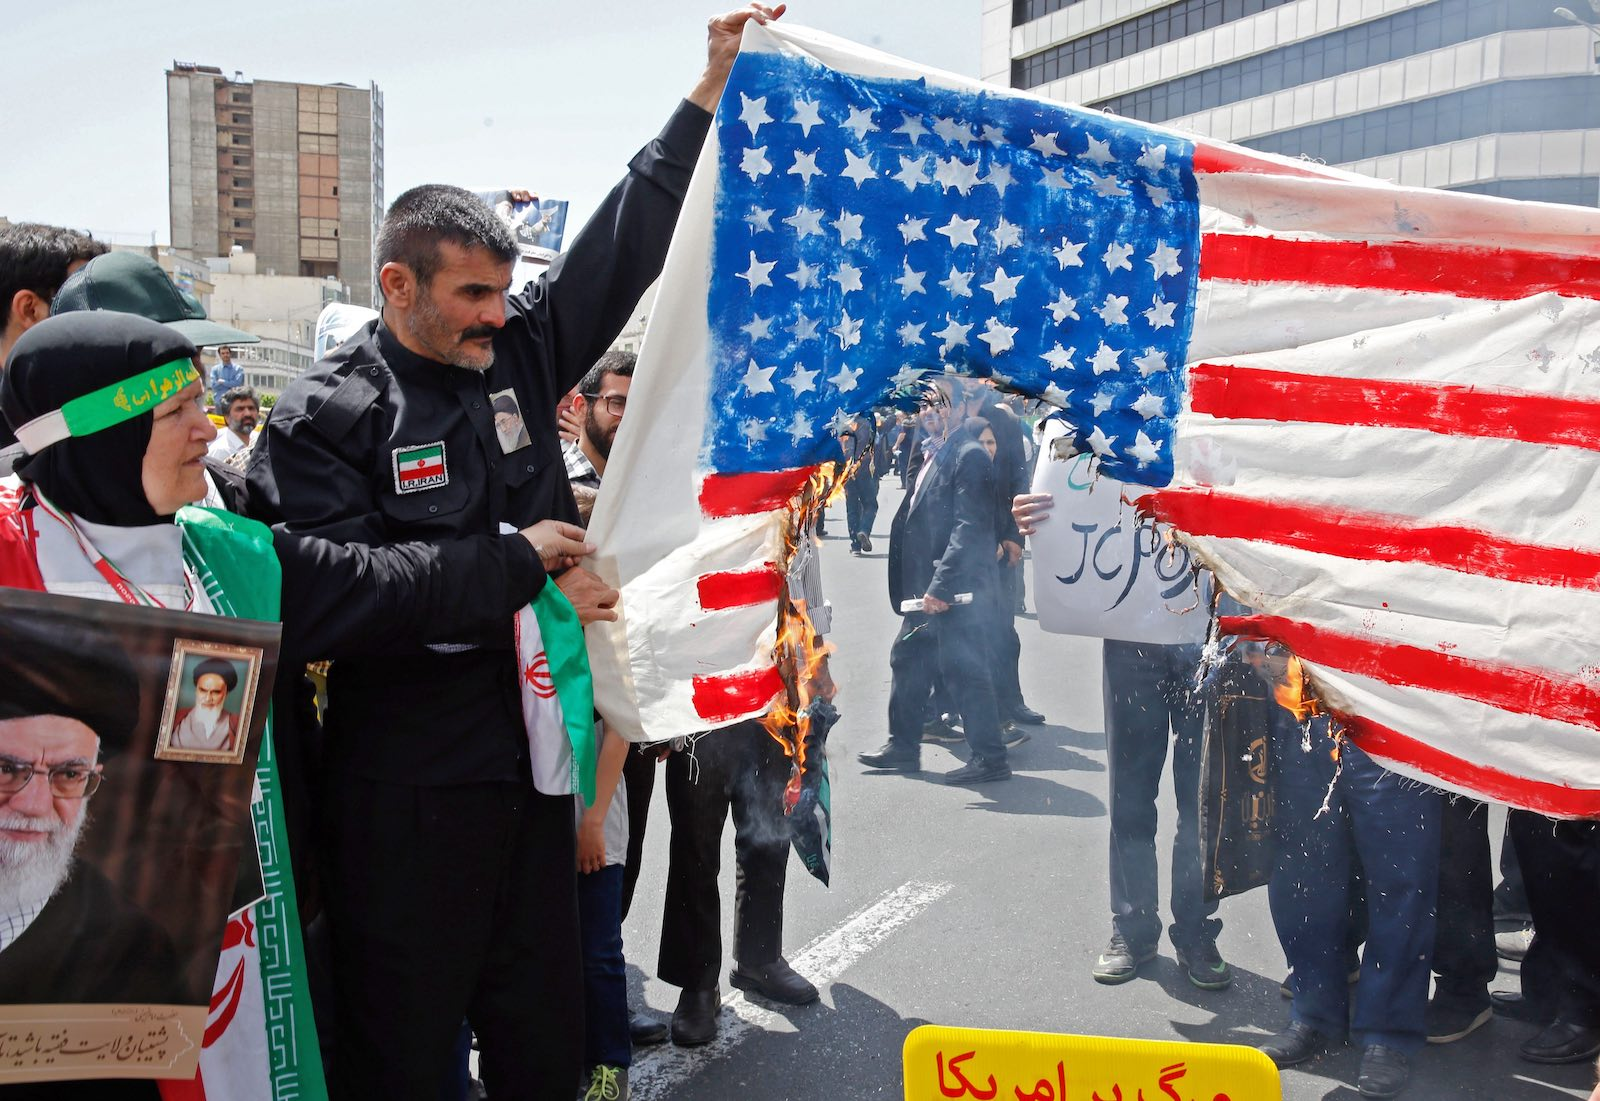 Demonstrators burn a makeshift US flag in Tehran this month (Photo: STR via Getty)